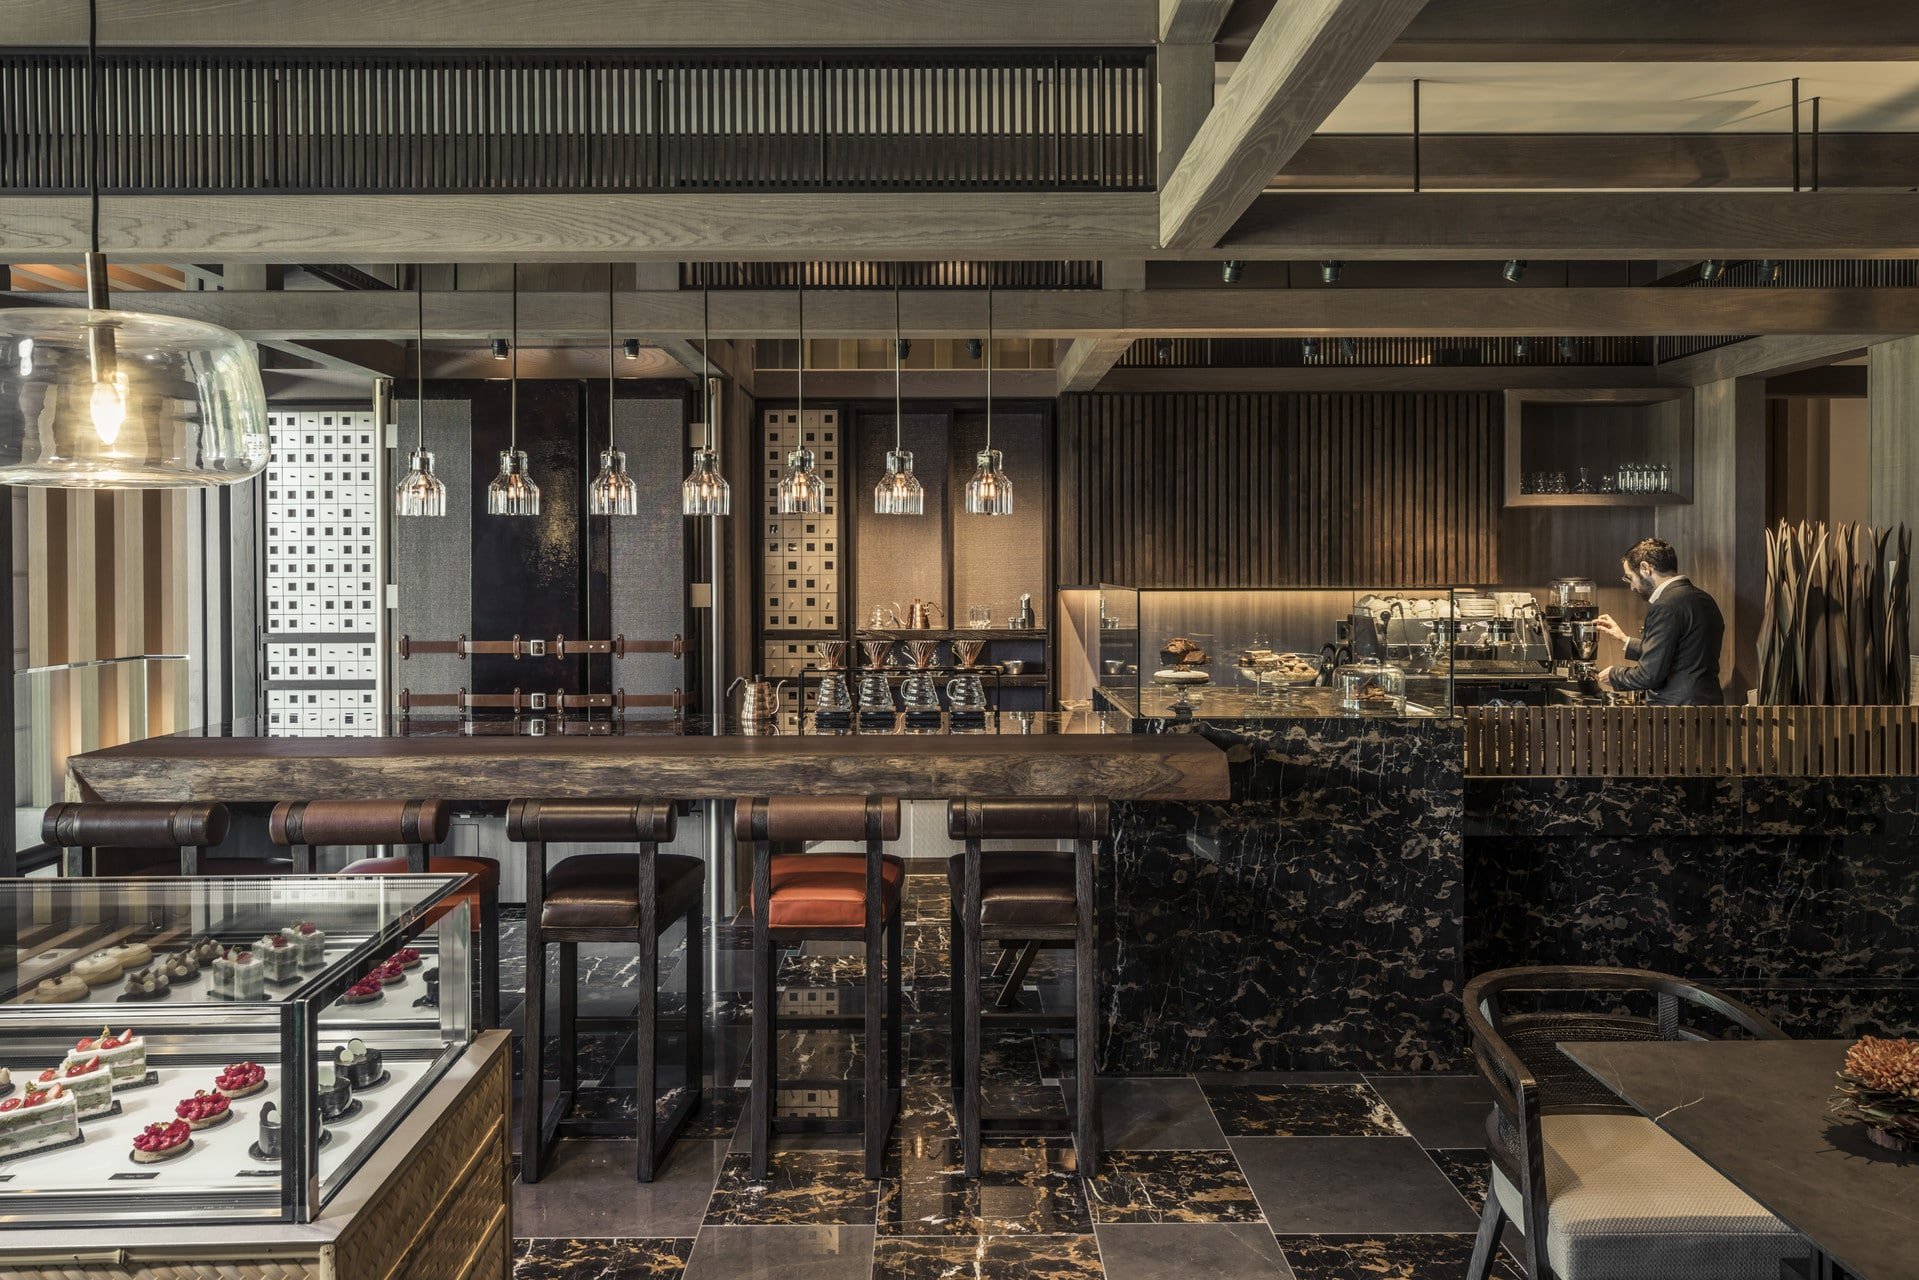 The dark, zen wood bar at The Lounge offers coffee and drinks but you can take desserts out of the adjacent glass case to-go.